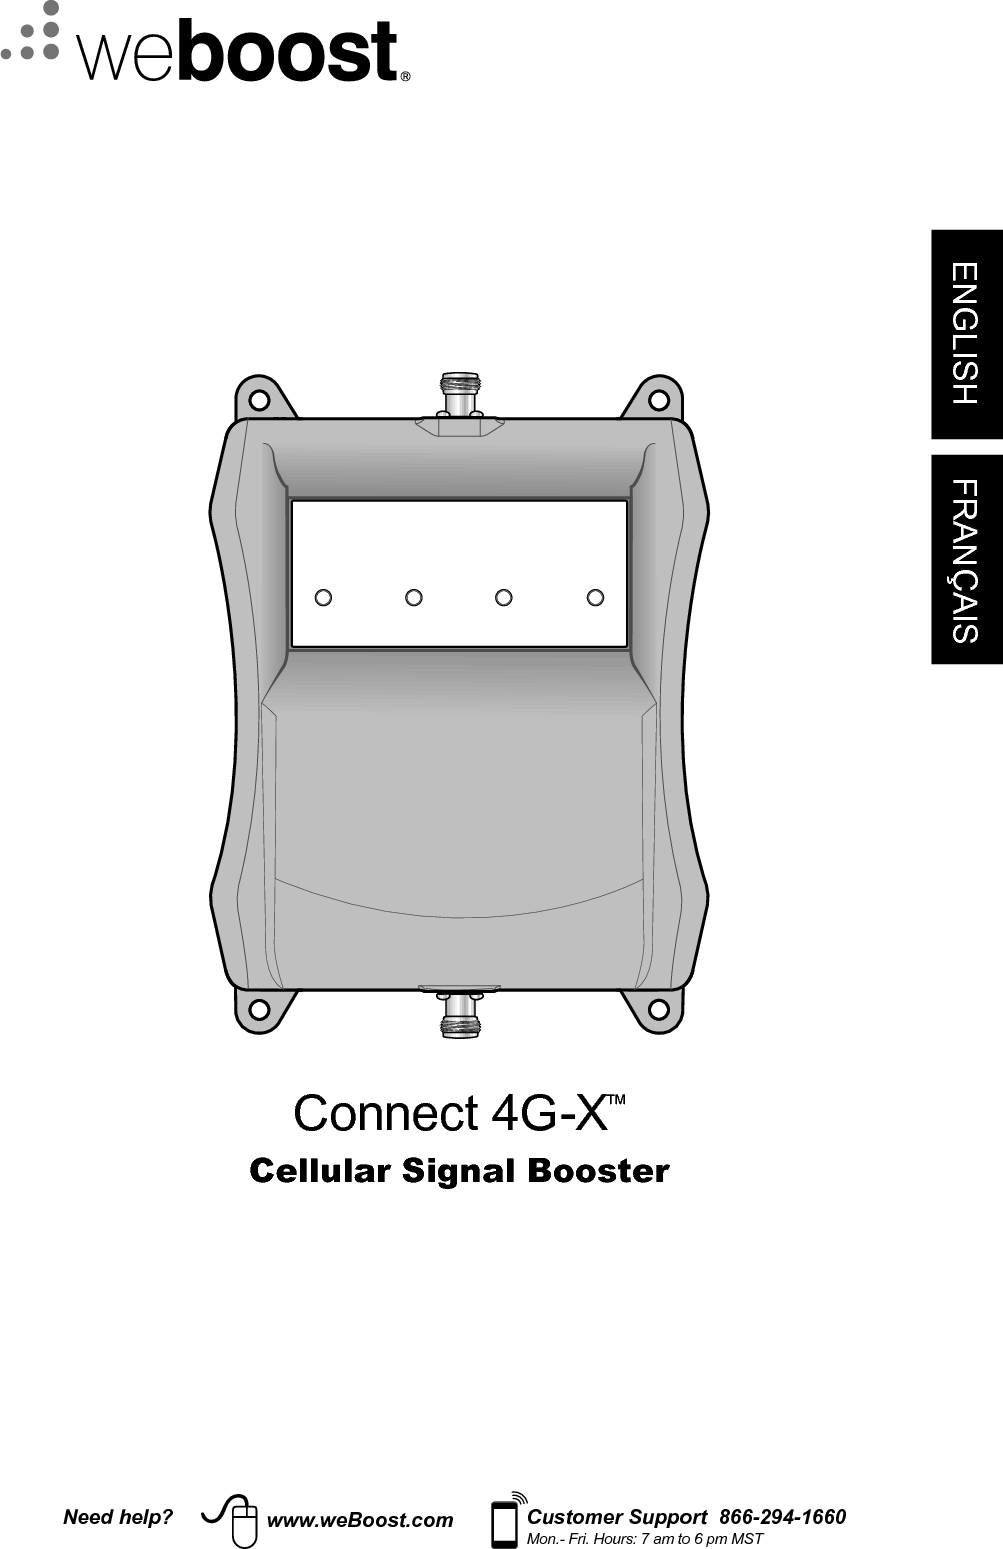 weboost connect 4g signal booster manual